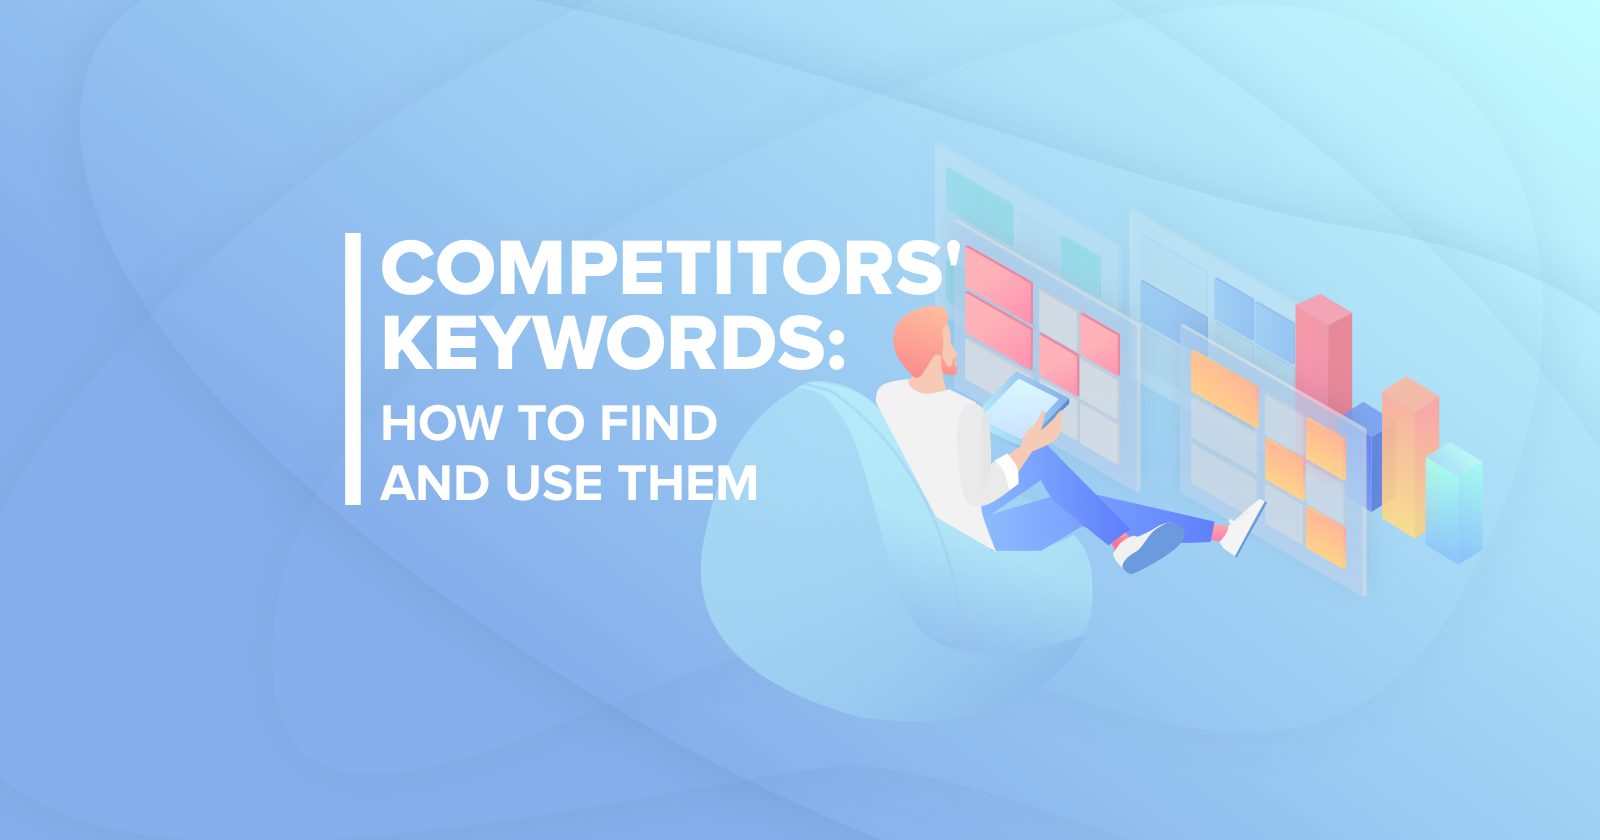 How to Use Competitors Keywords to Make More Money